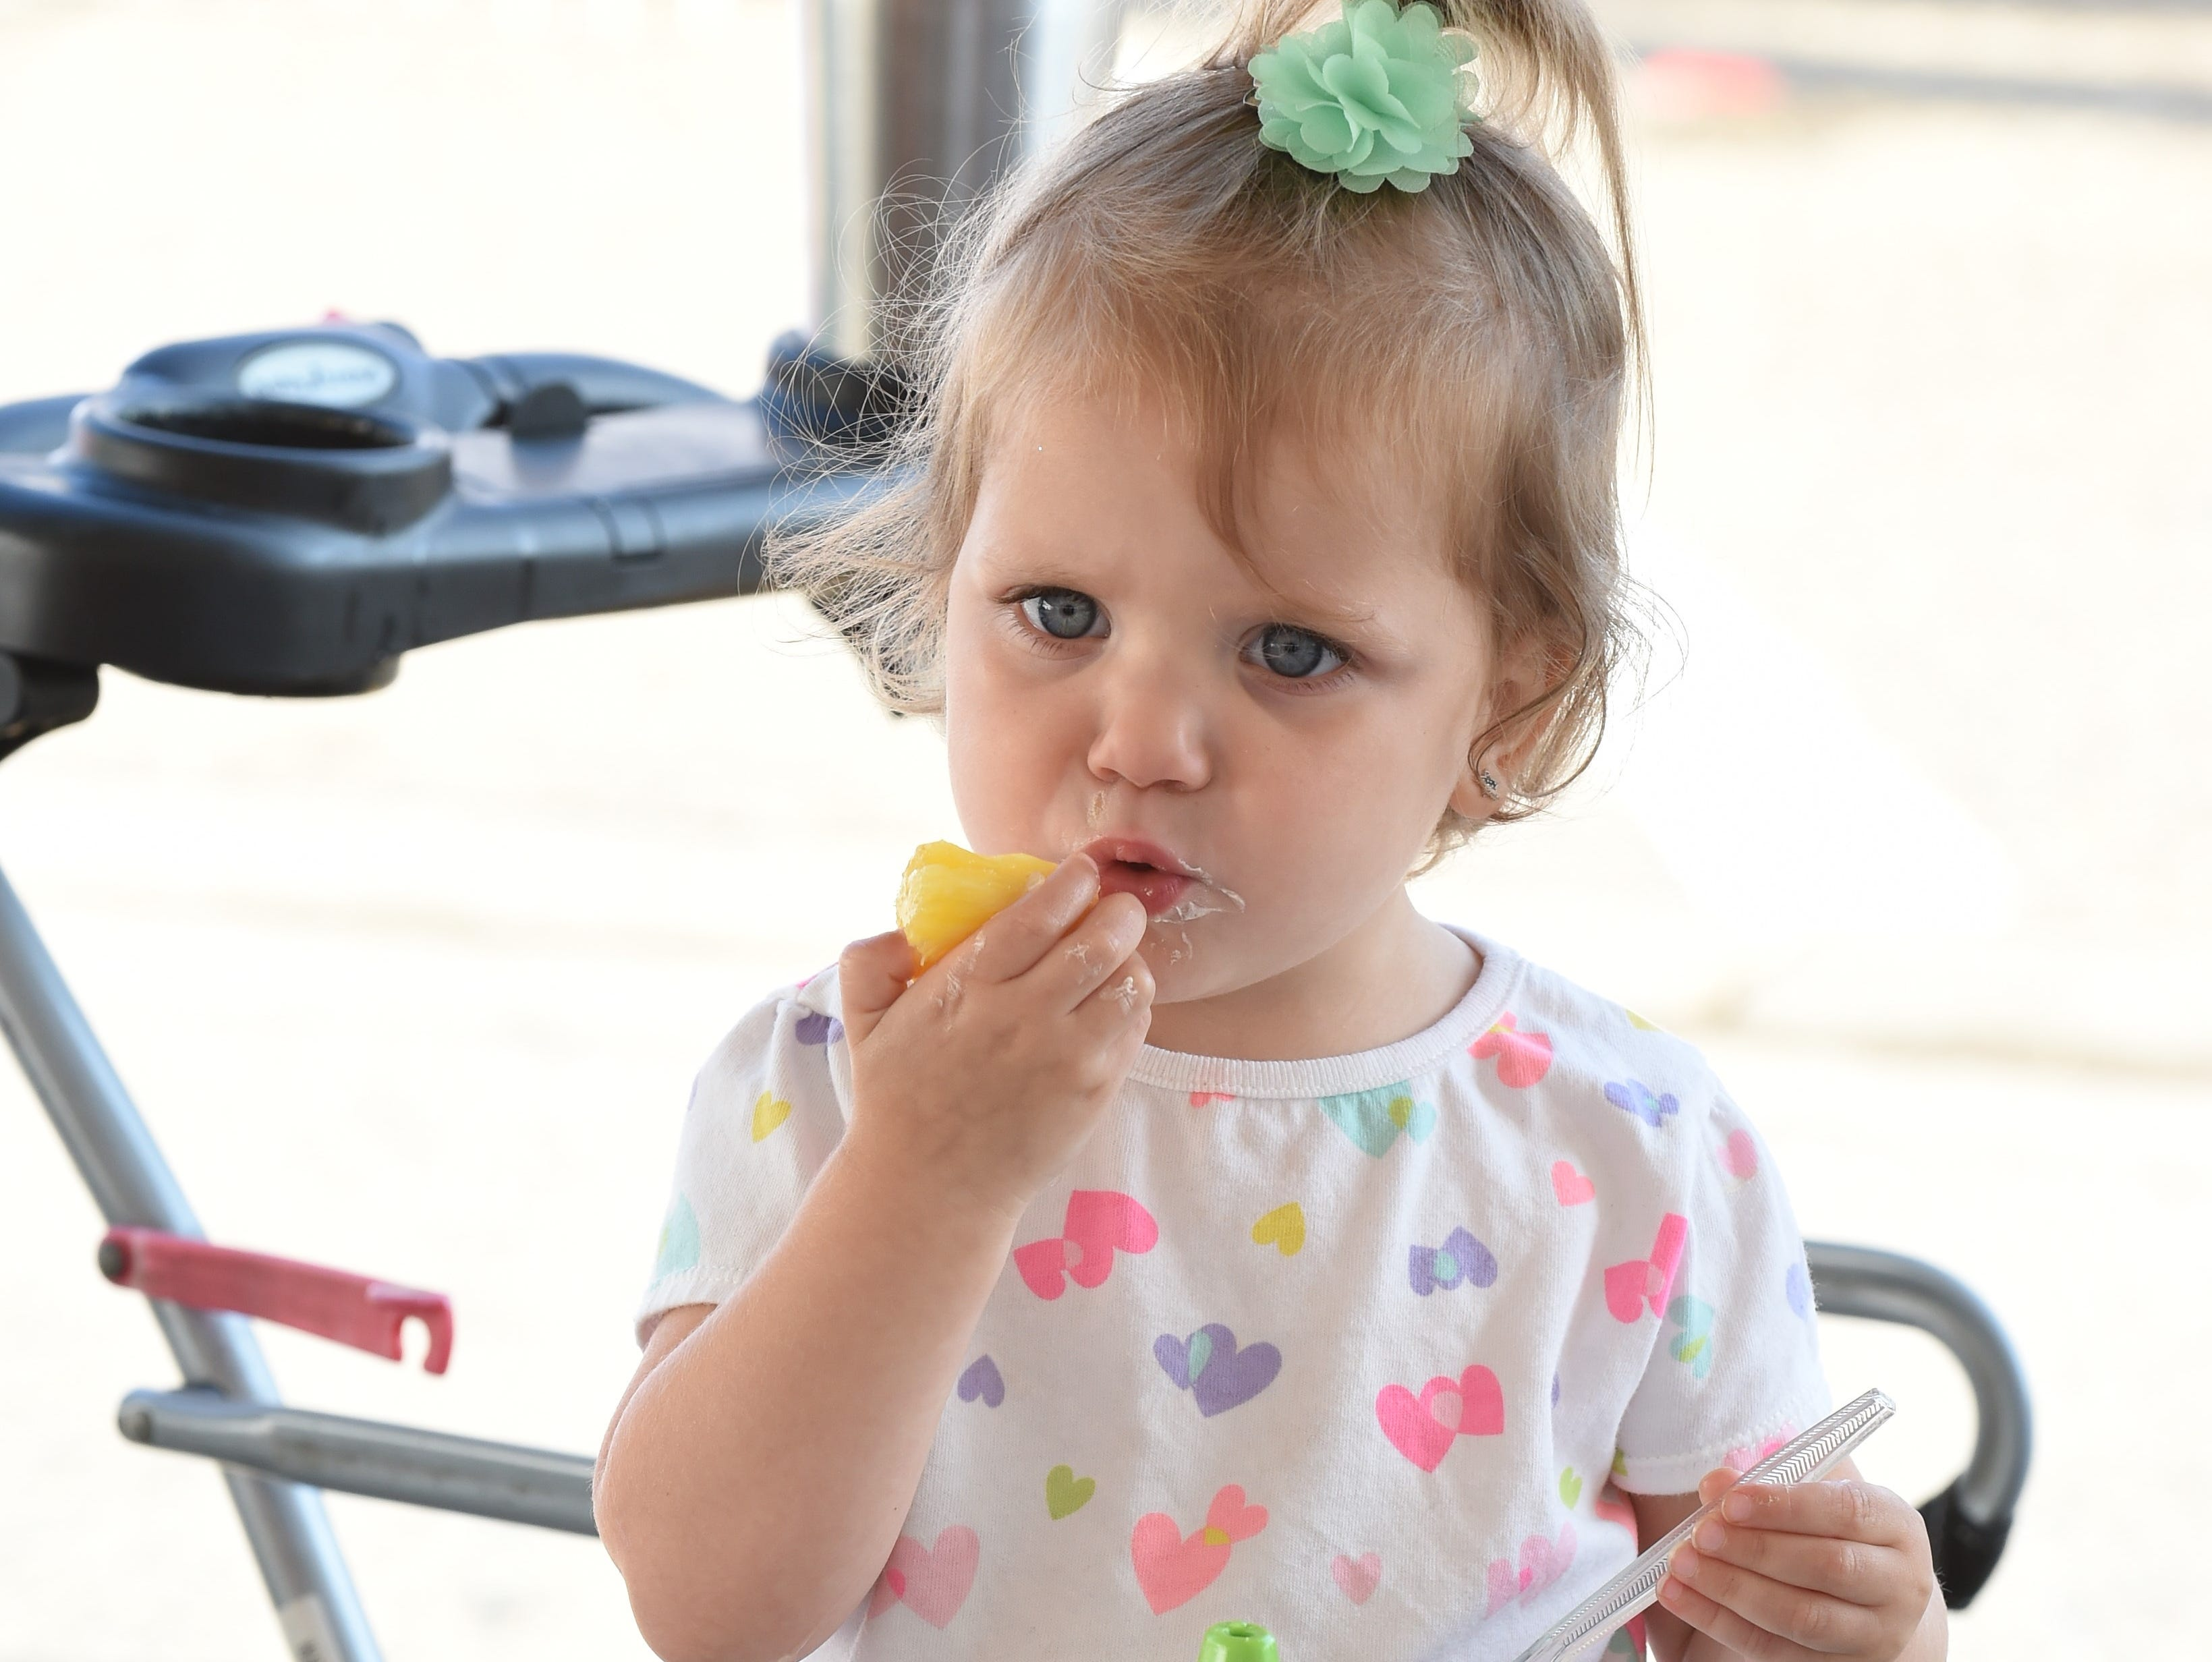 Two-year old Gabrielle Smith come to the pancake breakfast with an appetite.